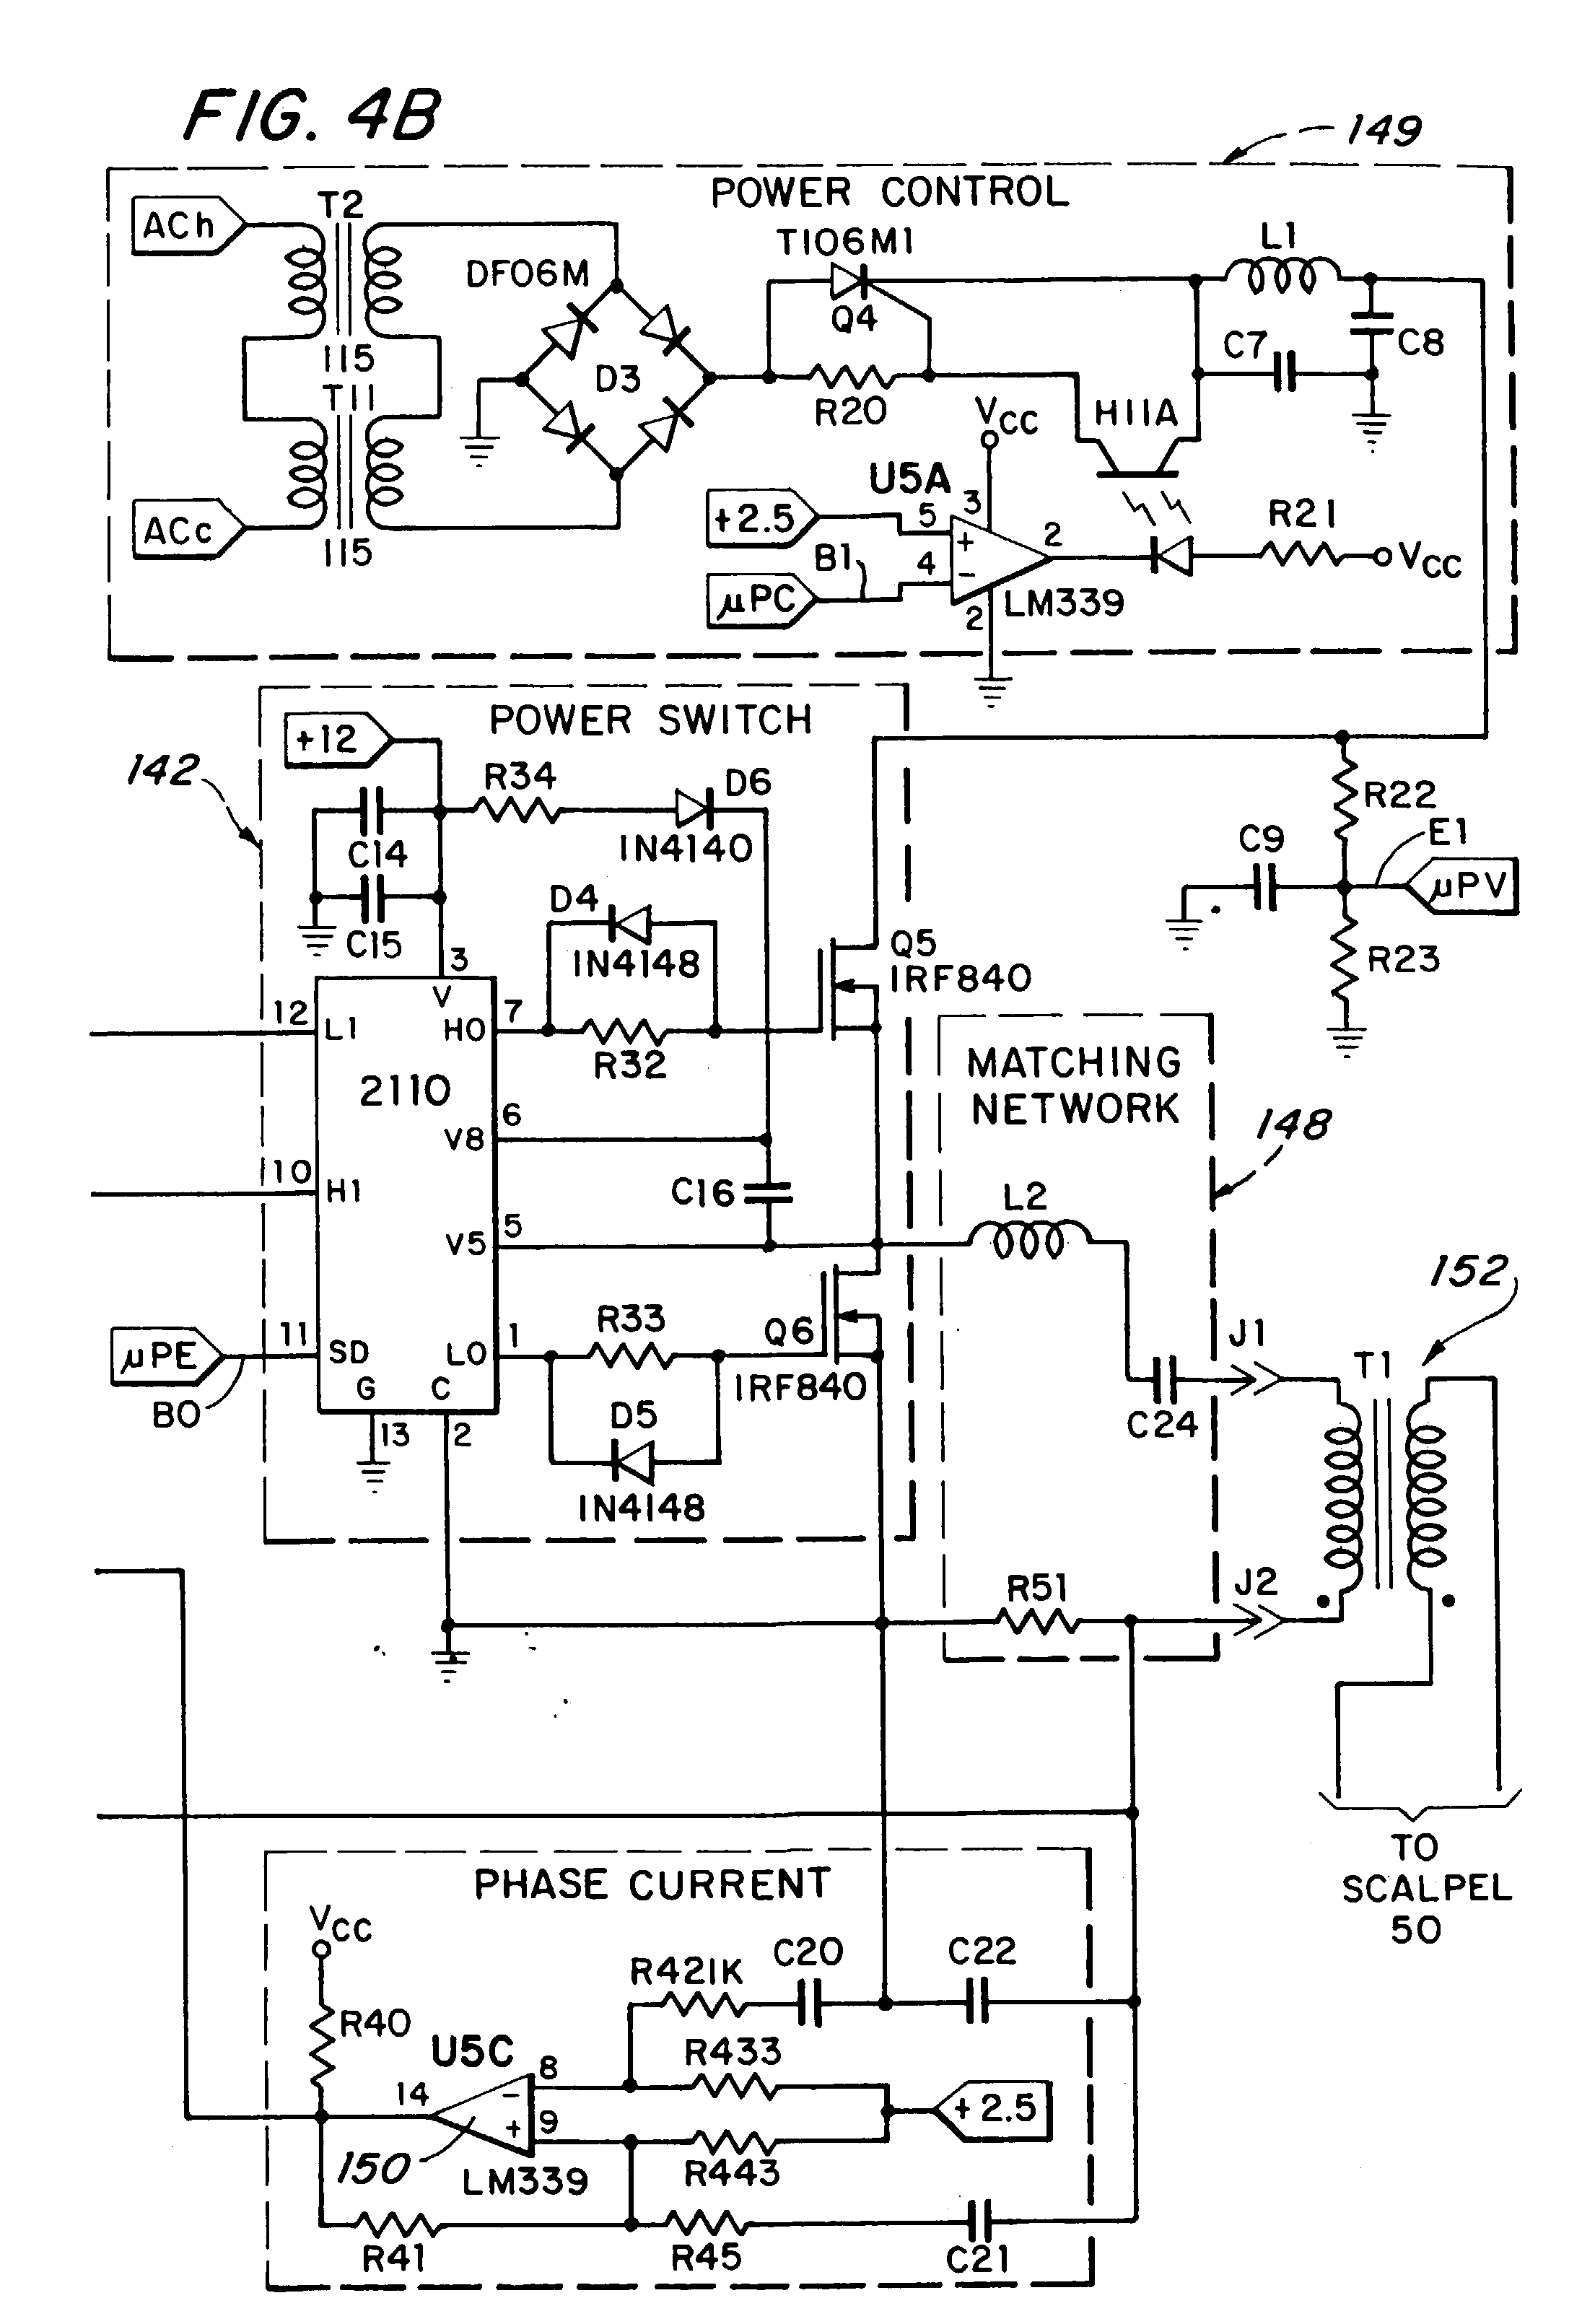 Belimo Actuator Wiring Diagram Source Relay Honeywell R8222u 1071 Watch Additionally Ultrasound Generator Circuit In Addition Motorised Valve Further Rotork Iq